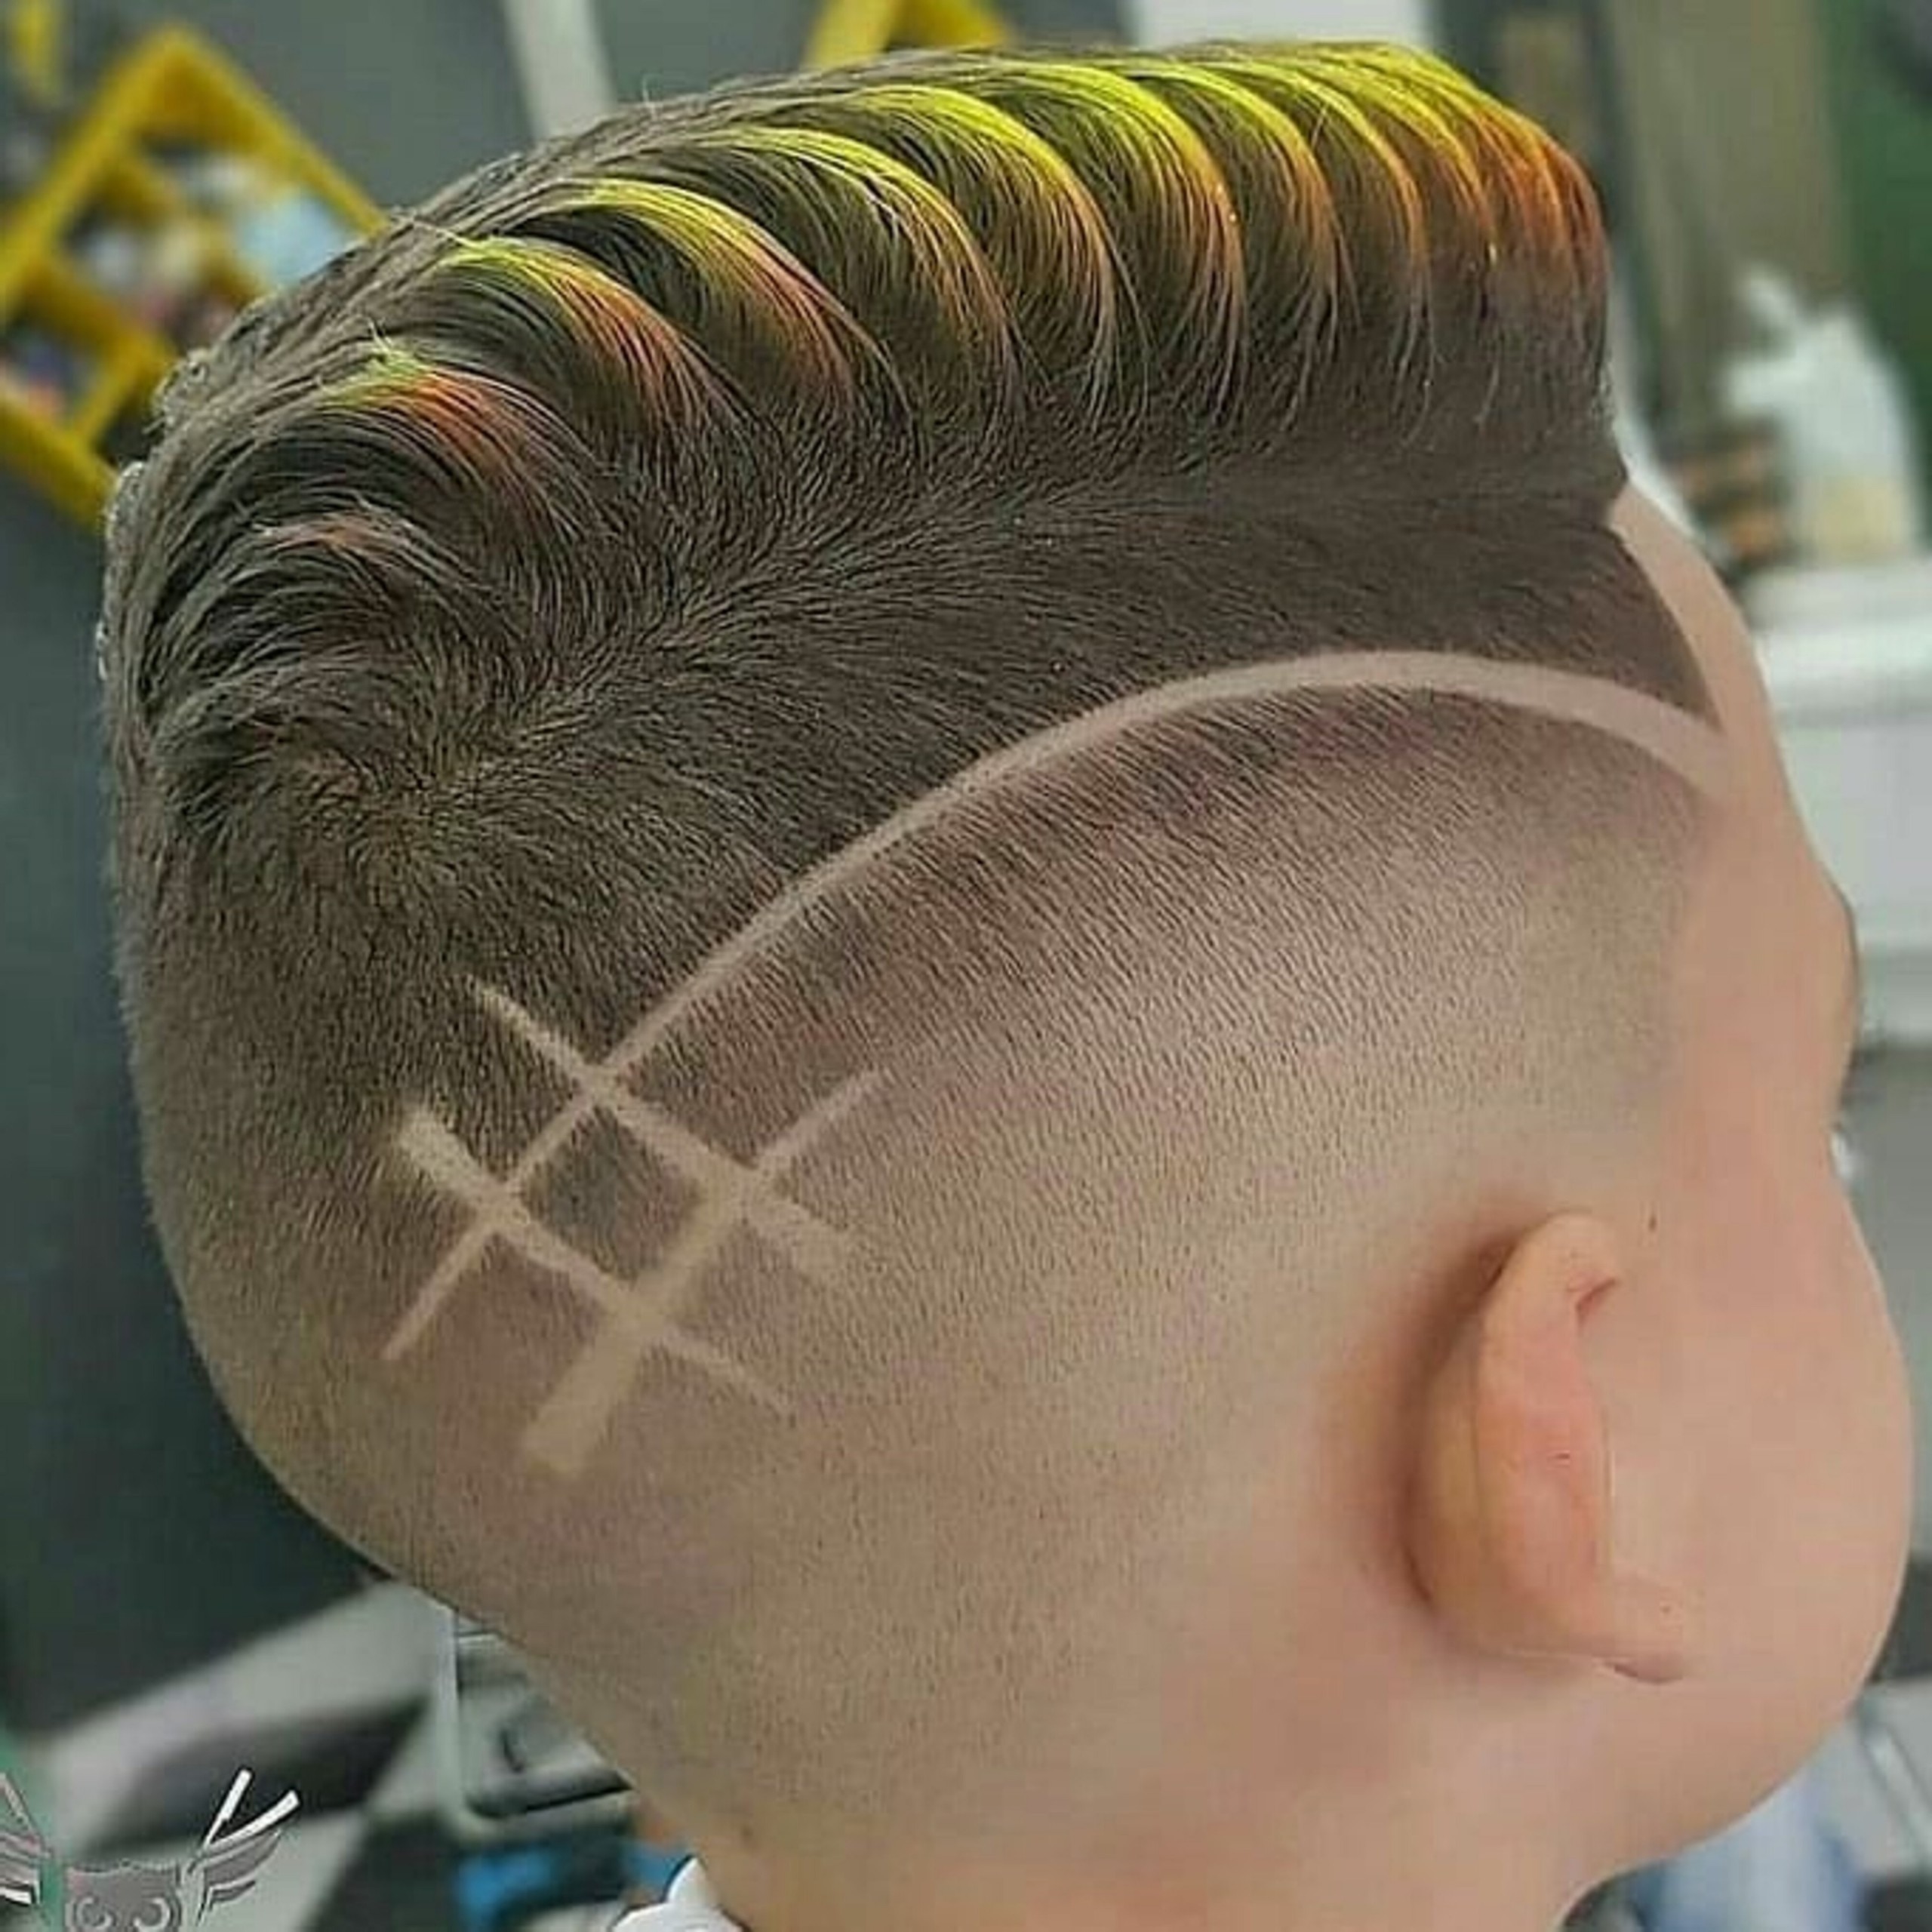 An unsual fade haircut for boys with a line.